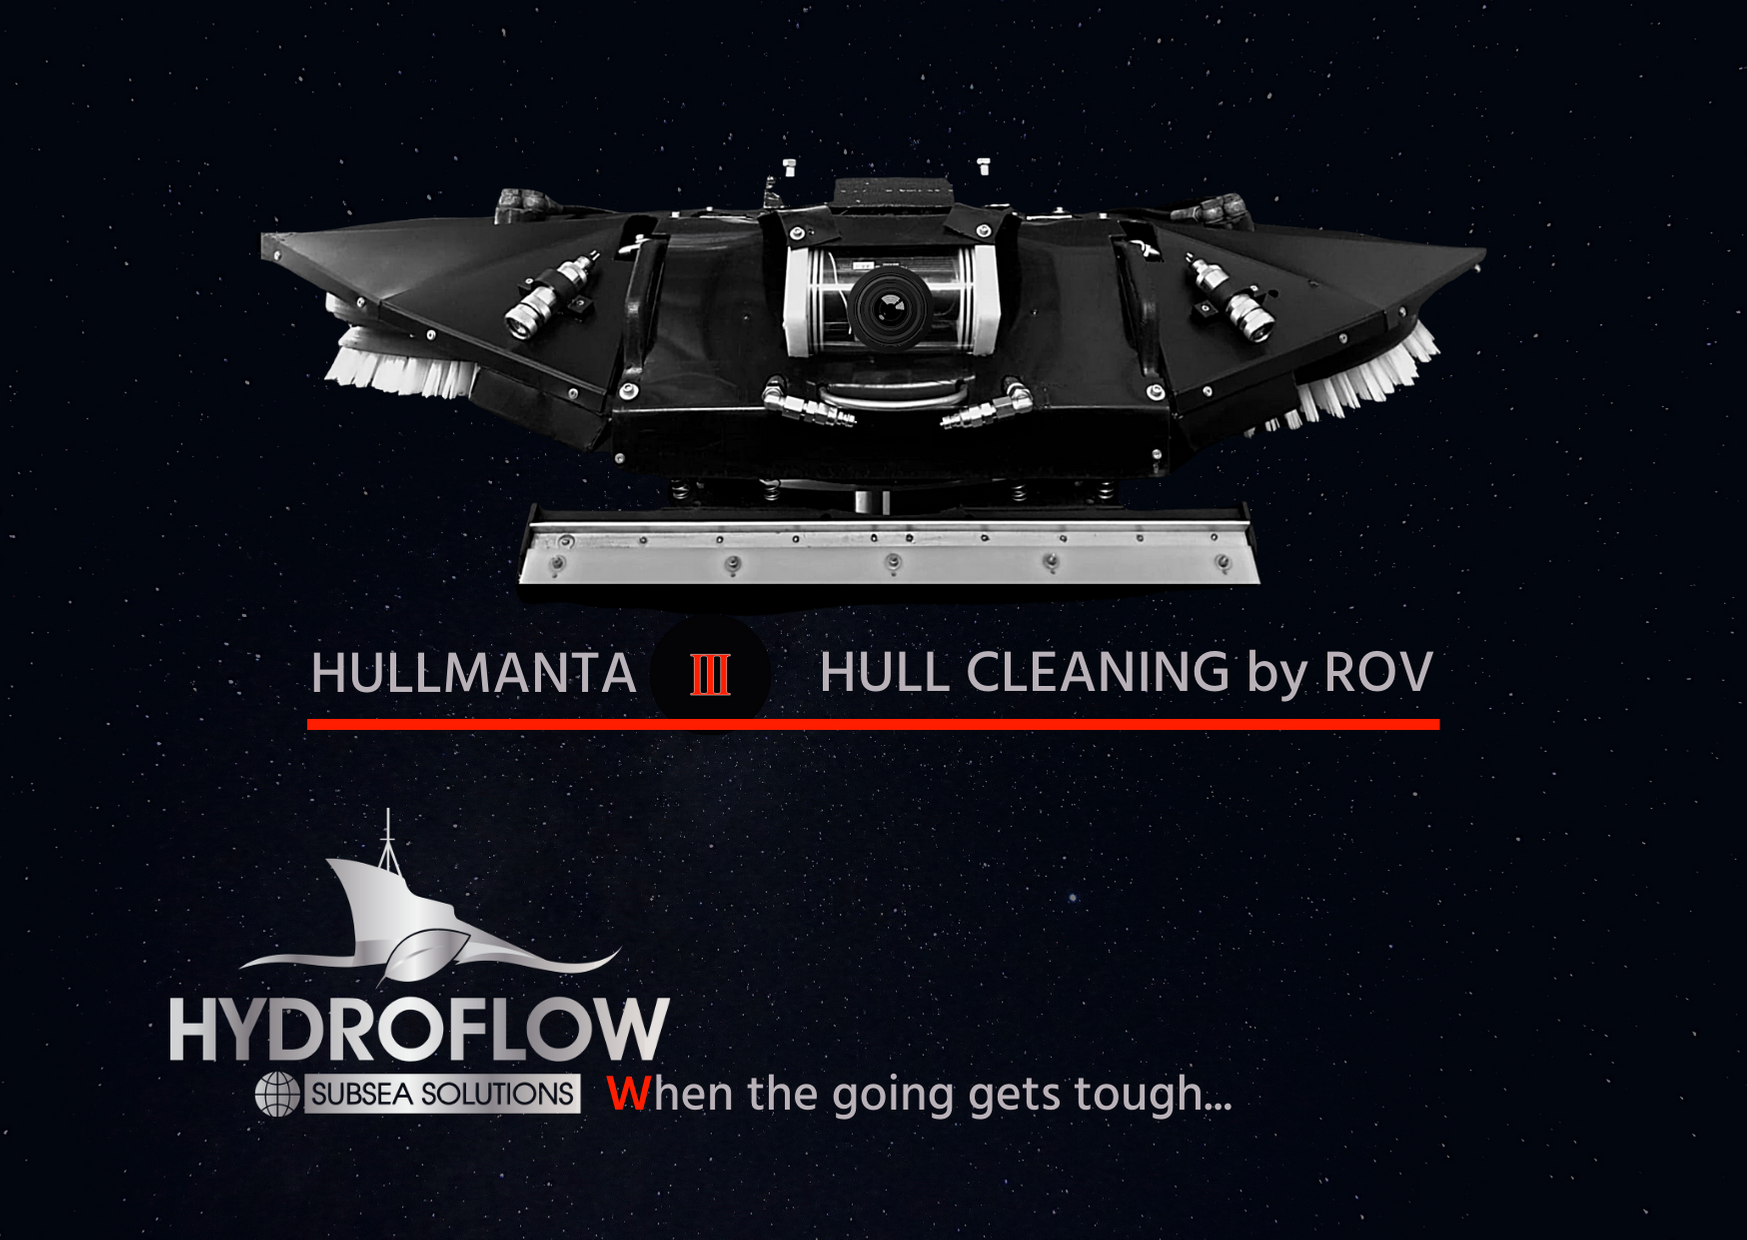 Hull cleaning by ROV